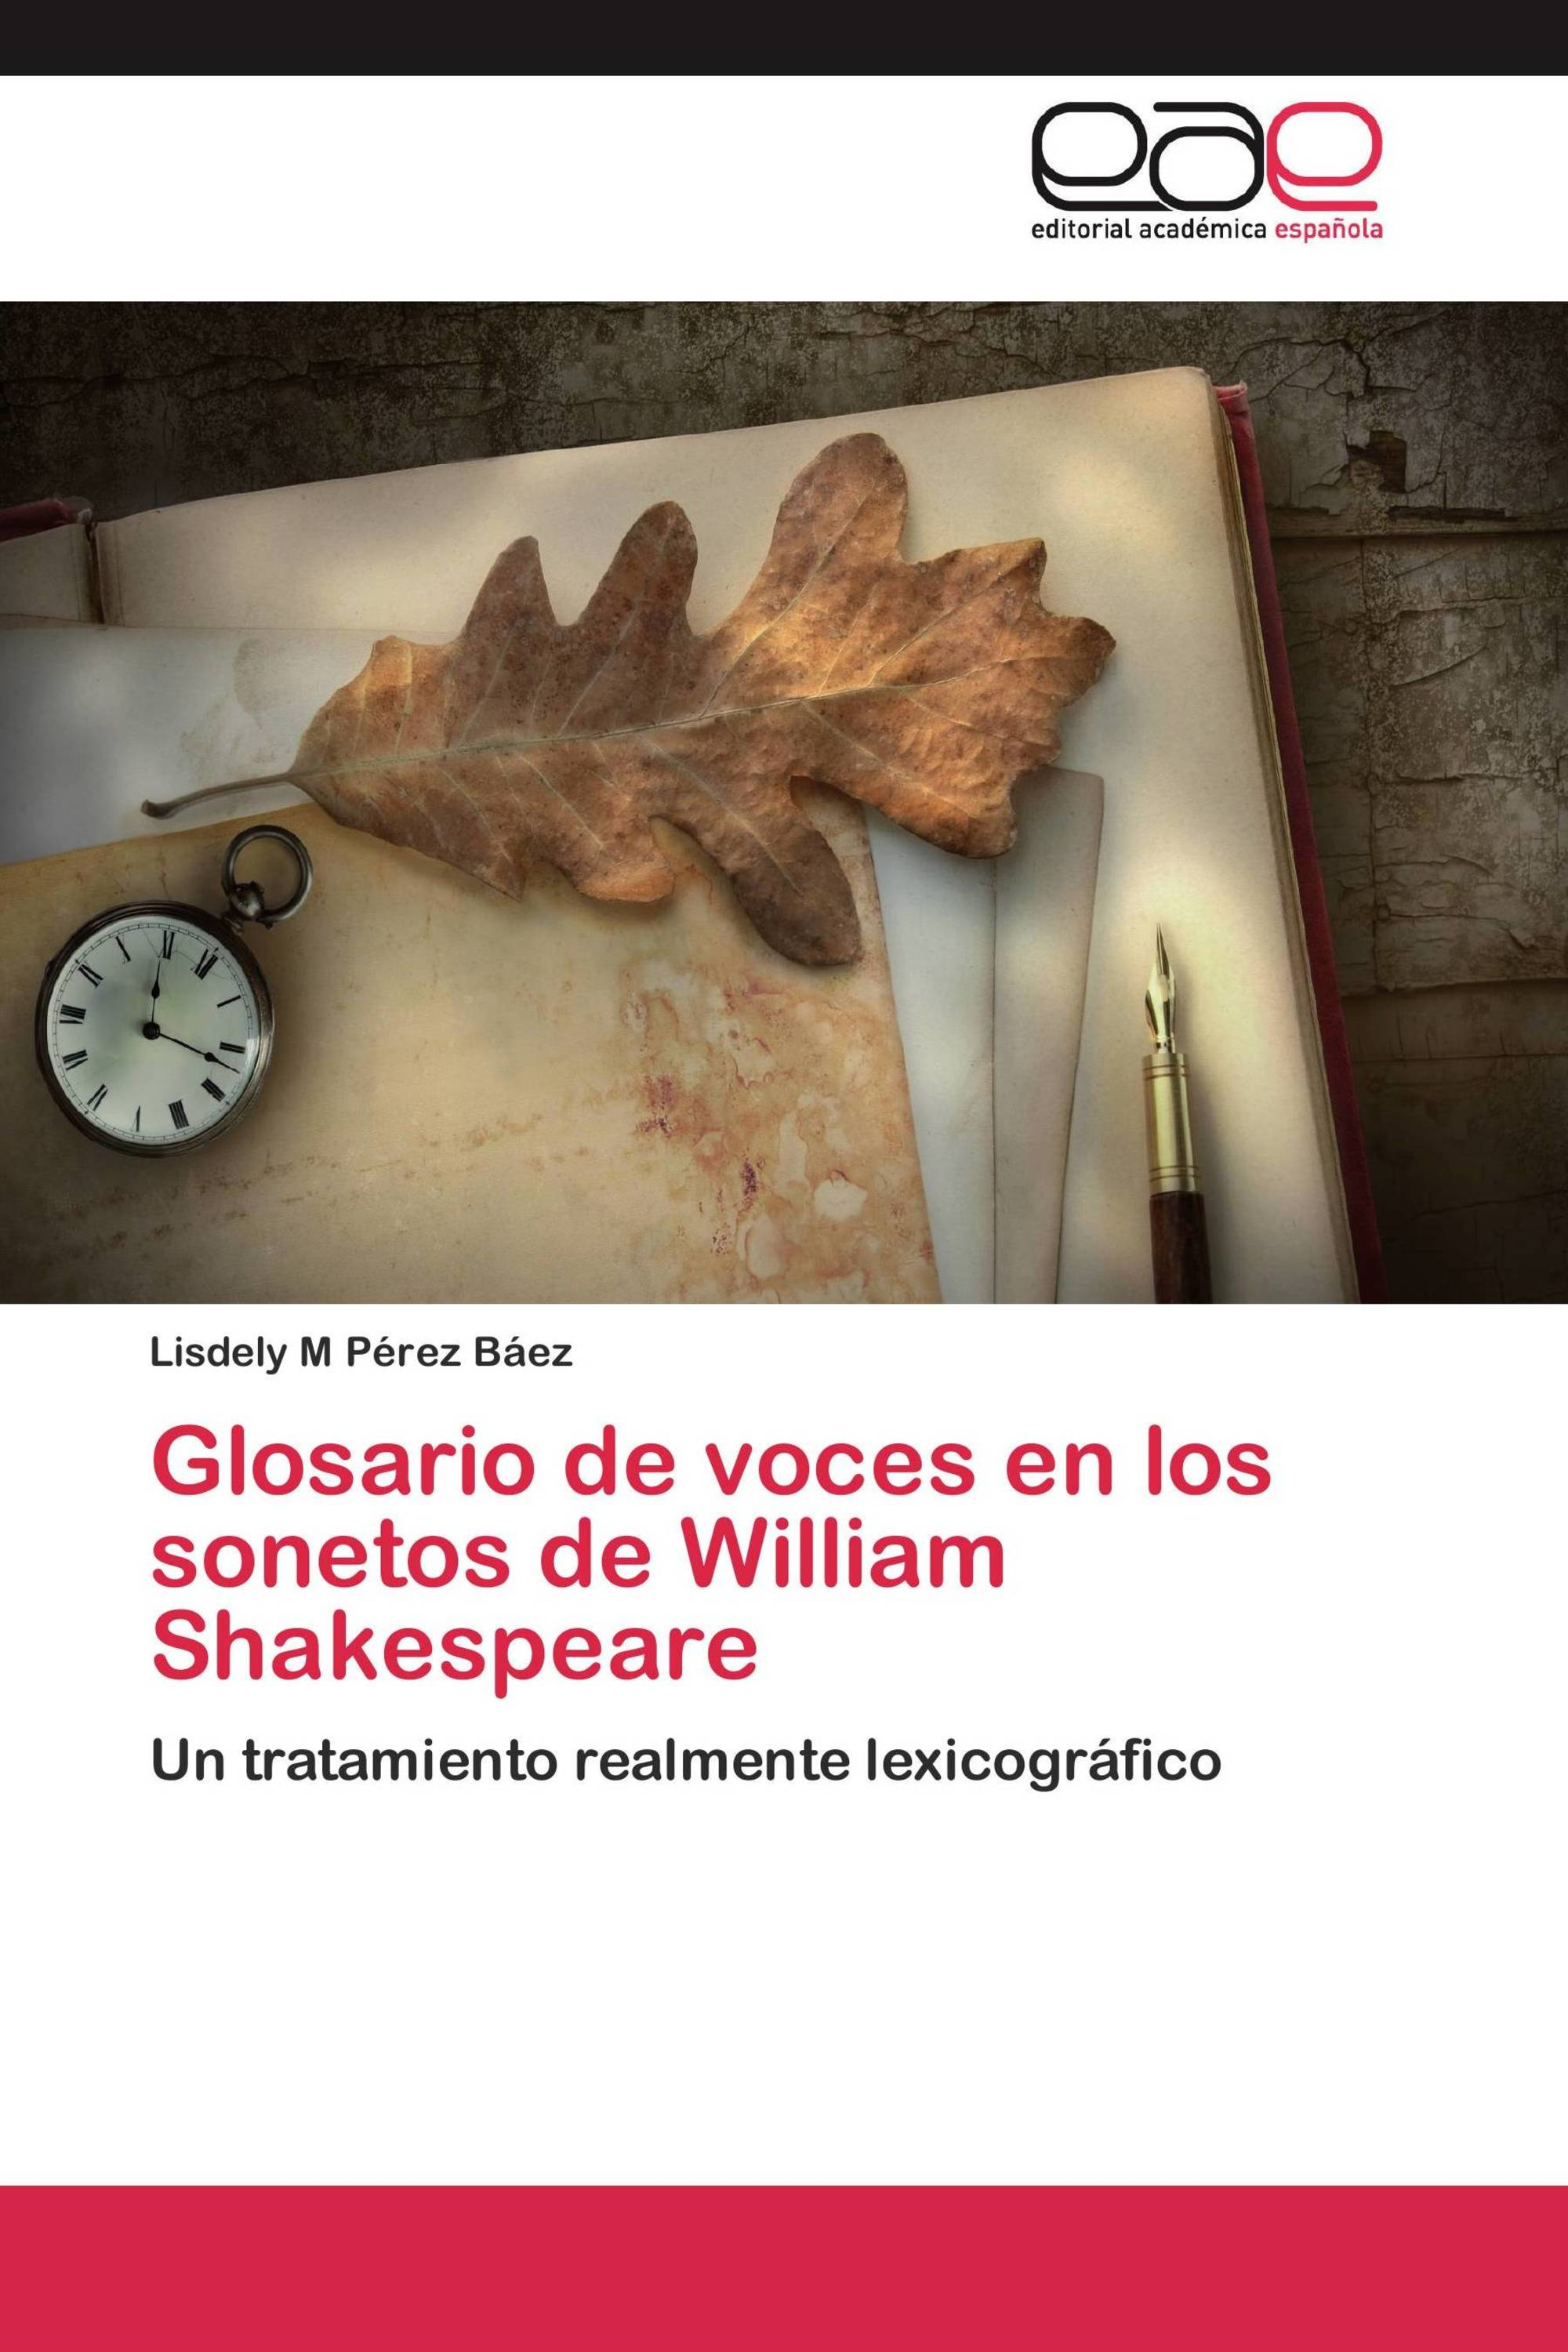 Glosario de voces en los sonetos de William Shakespeare